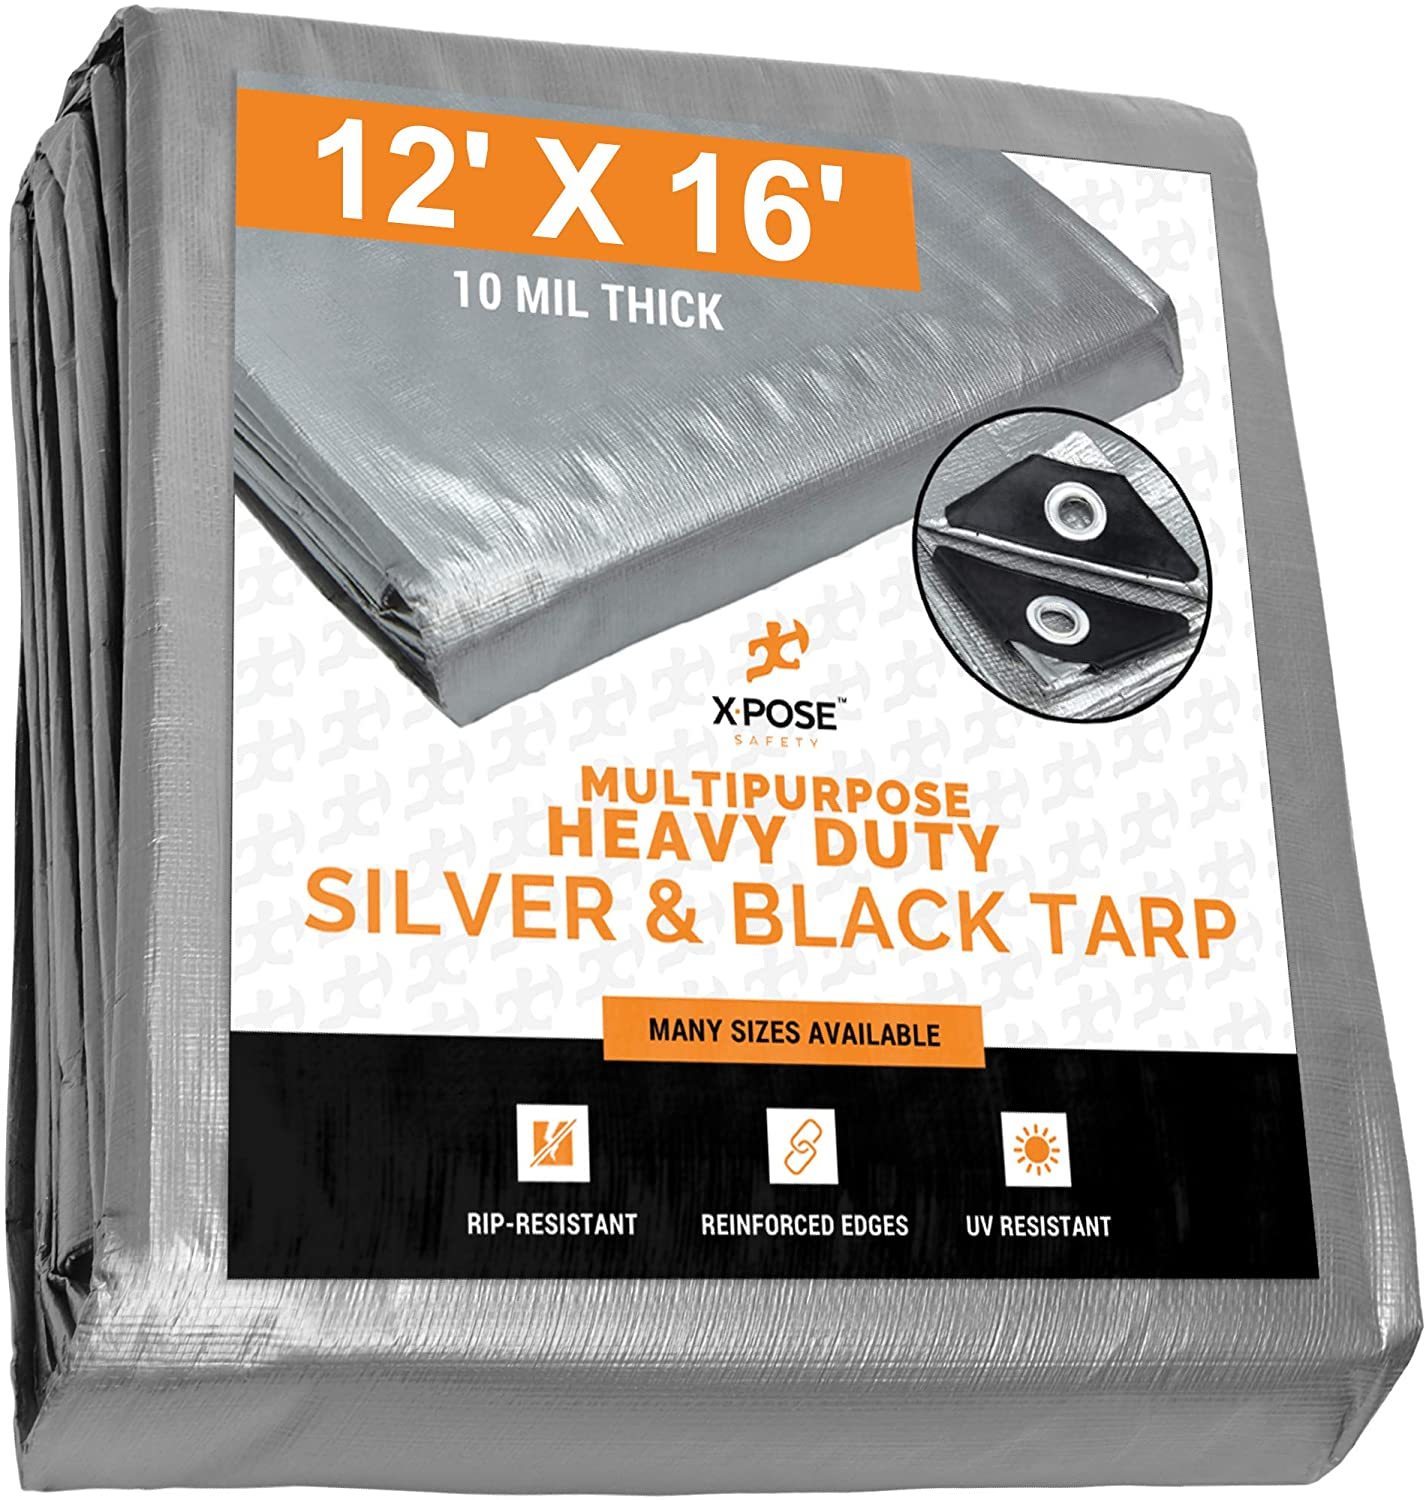 Heavy Duty Poly Tarp - 12' x 16' - 10 Mil Thick Waterproof, UV Blocking Protective Cover - Reversible Silver and Black - Laminated Coating - Rustproof Grommets - by Xpose Safety